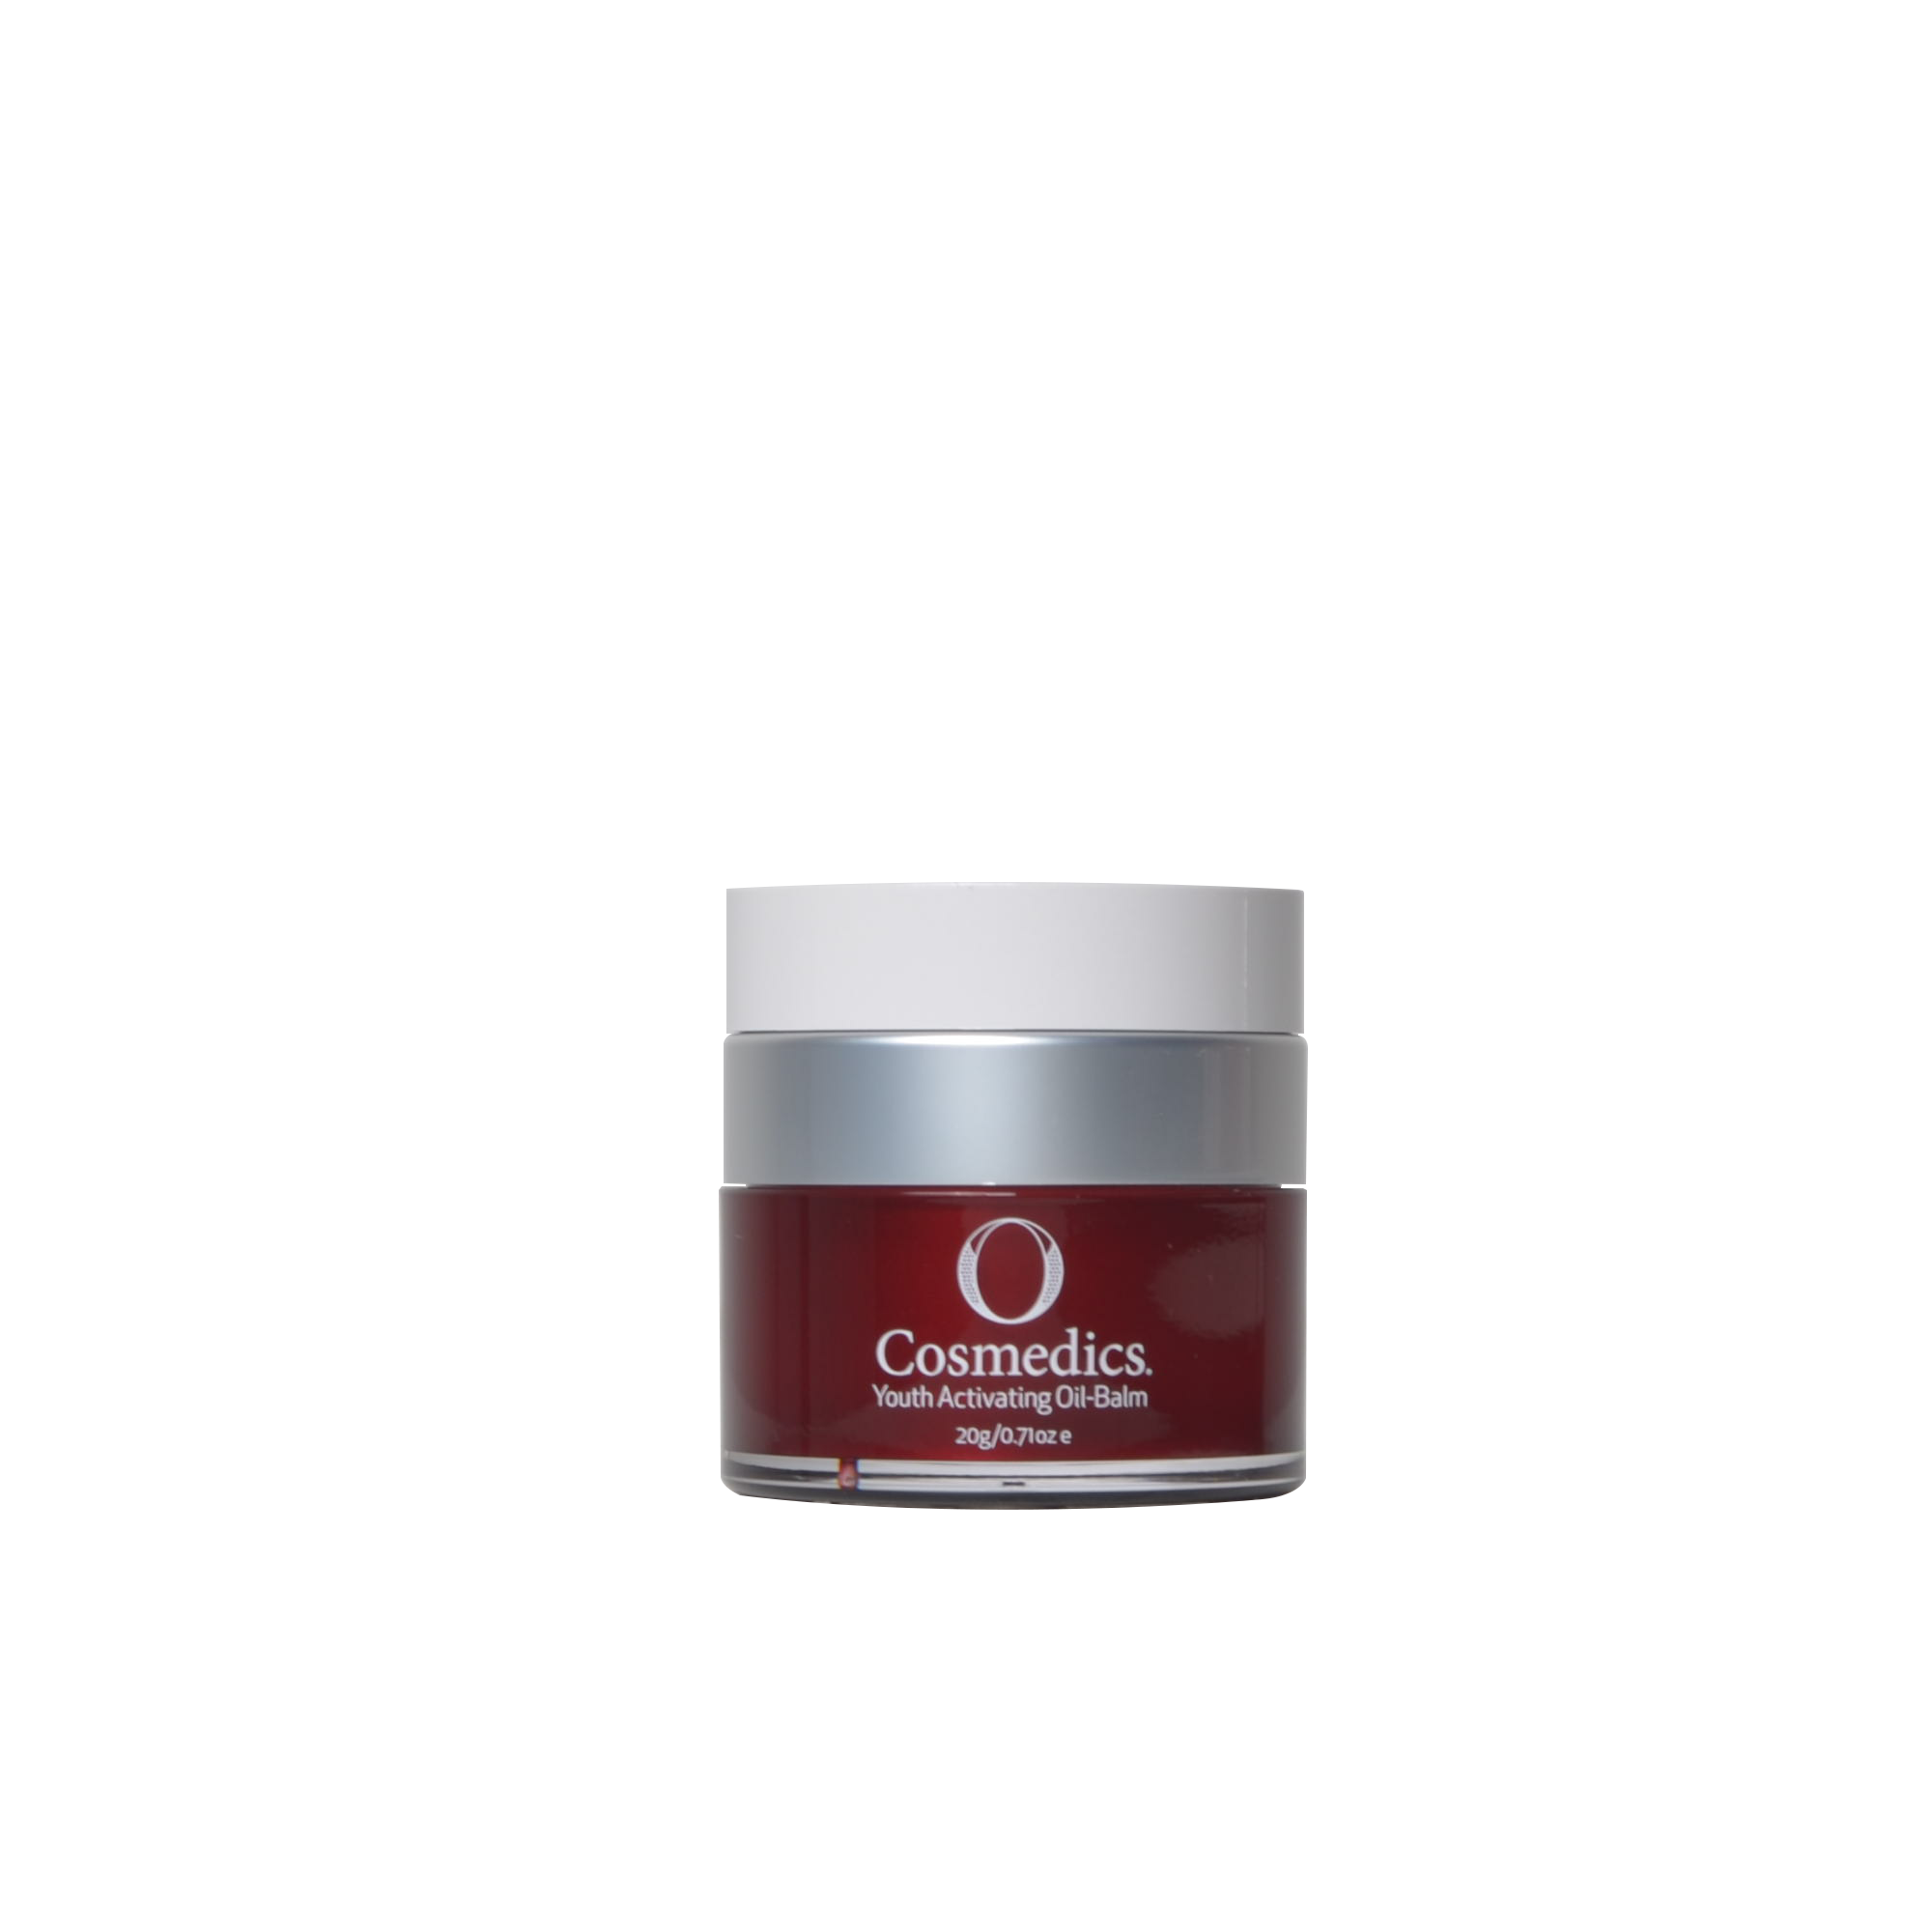 Youth Activating Oil-Balm - 20g